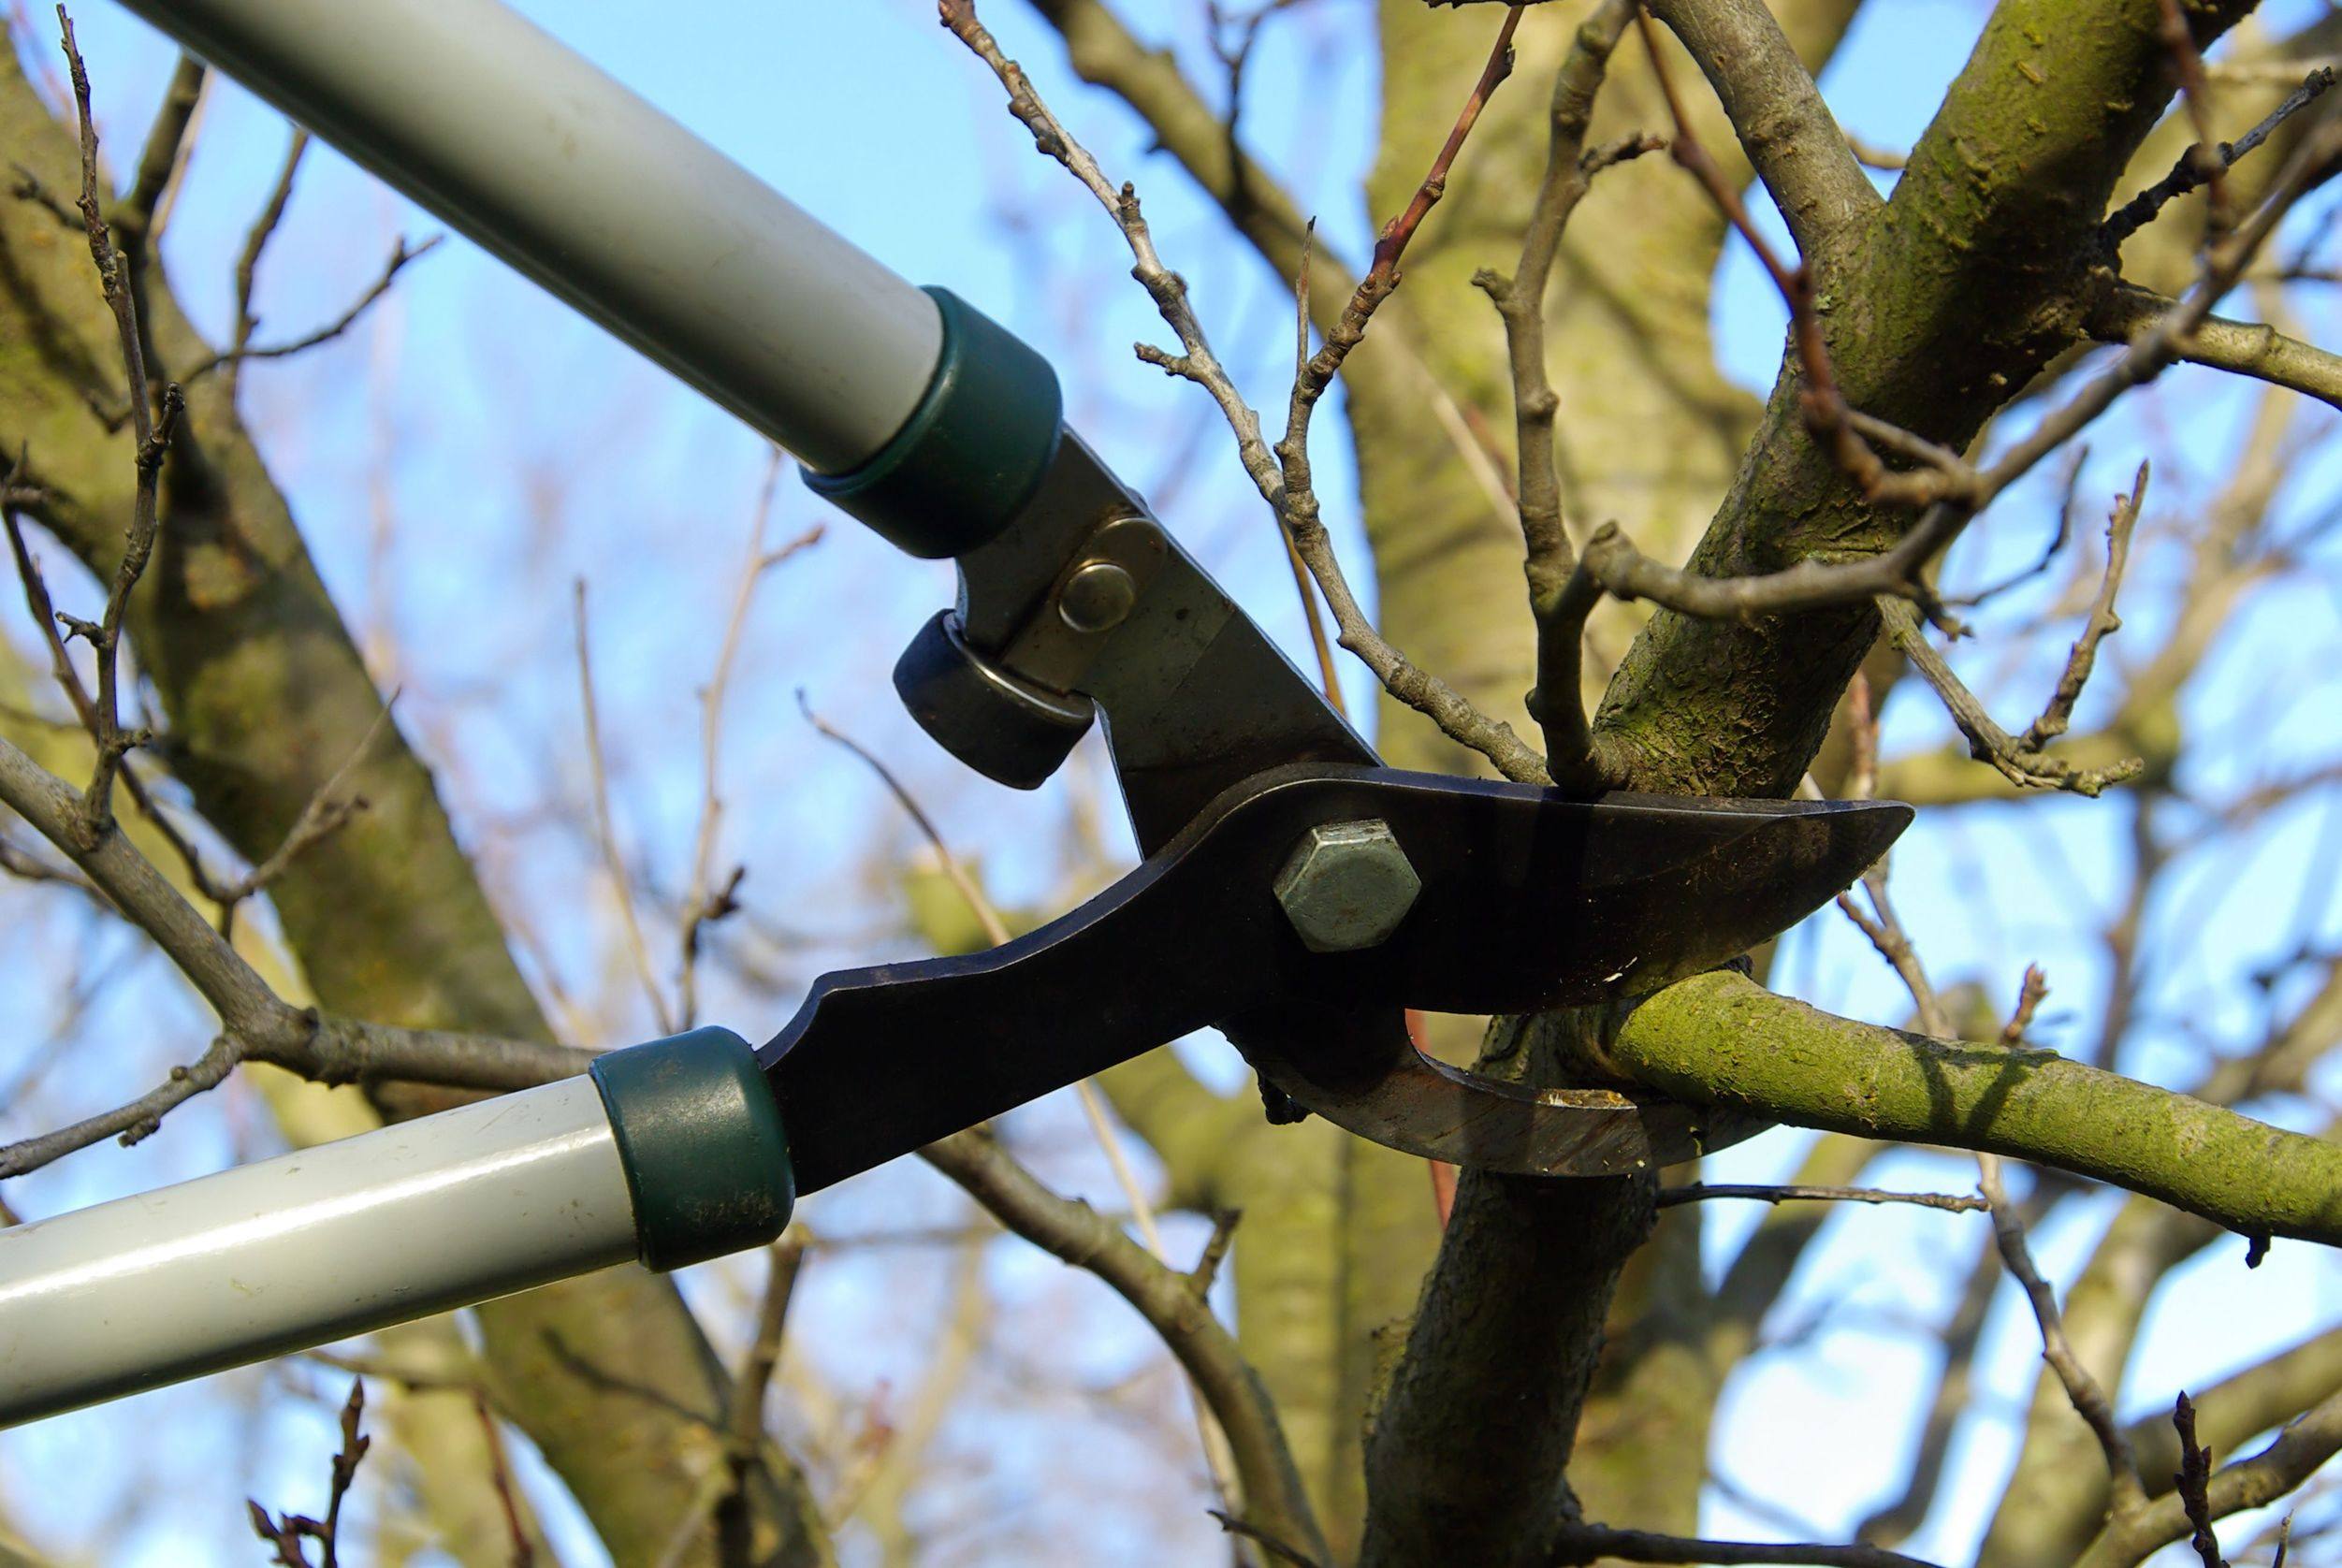 Pruning cuts impact the structure and growth of a tree and, as such, should be executed with thought and care.